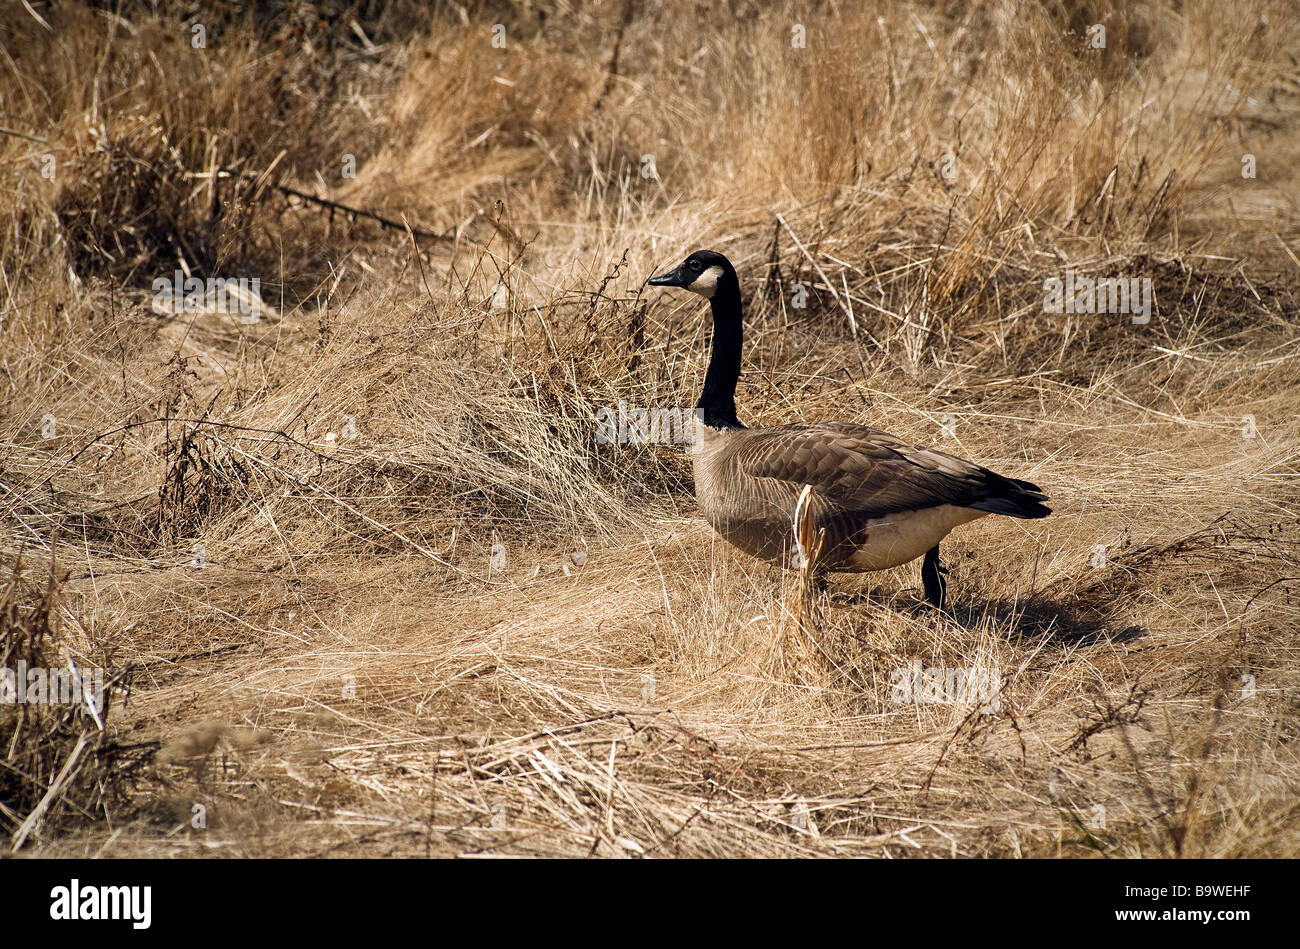 Canadian goose - Stock Image